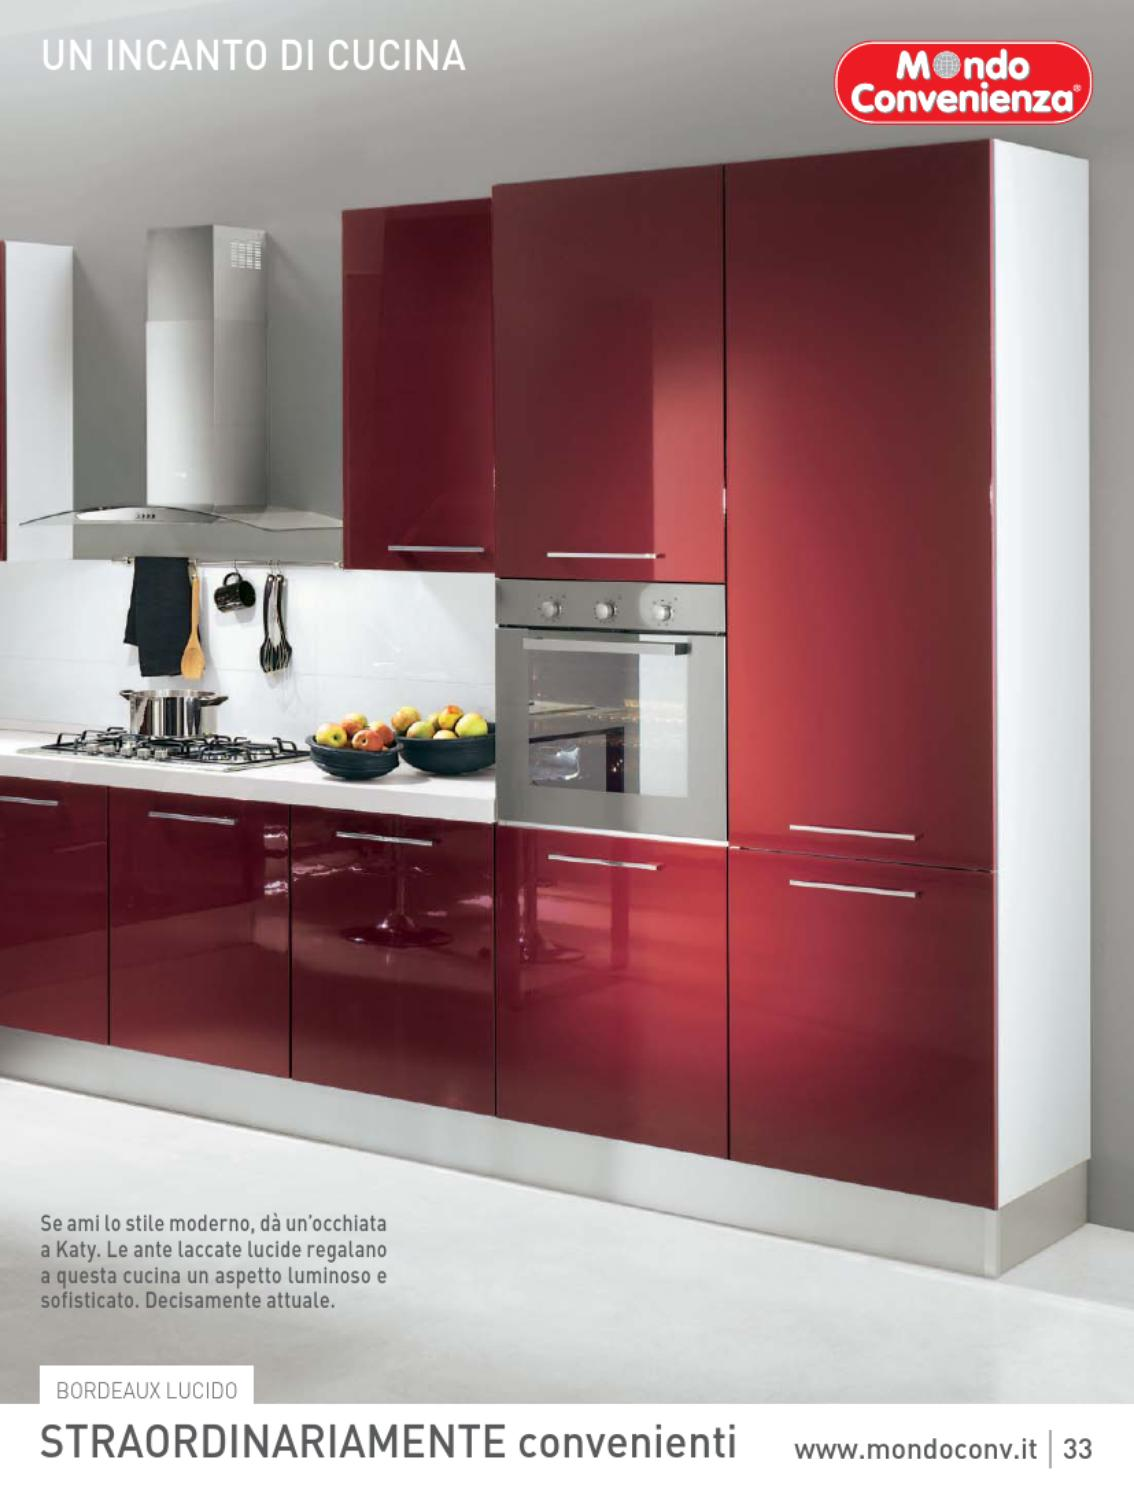 Mondo convenienza catalogo cucine 2013 by - Cucine mondo convenienza catalogo ...